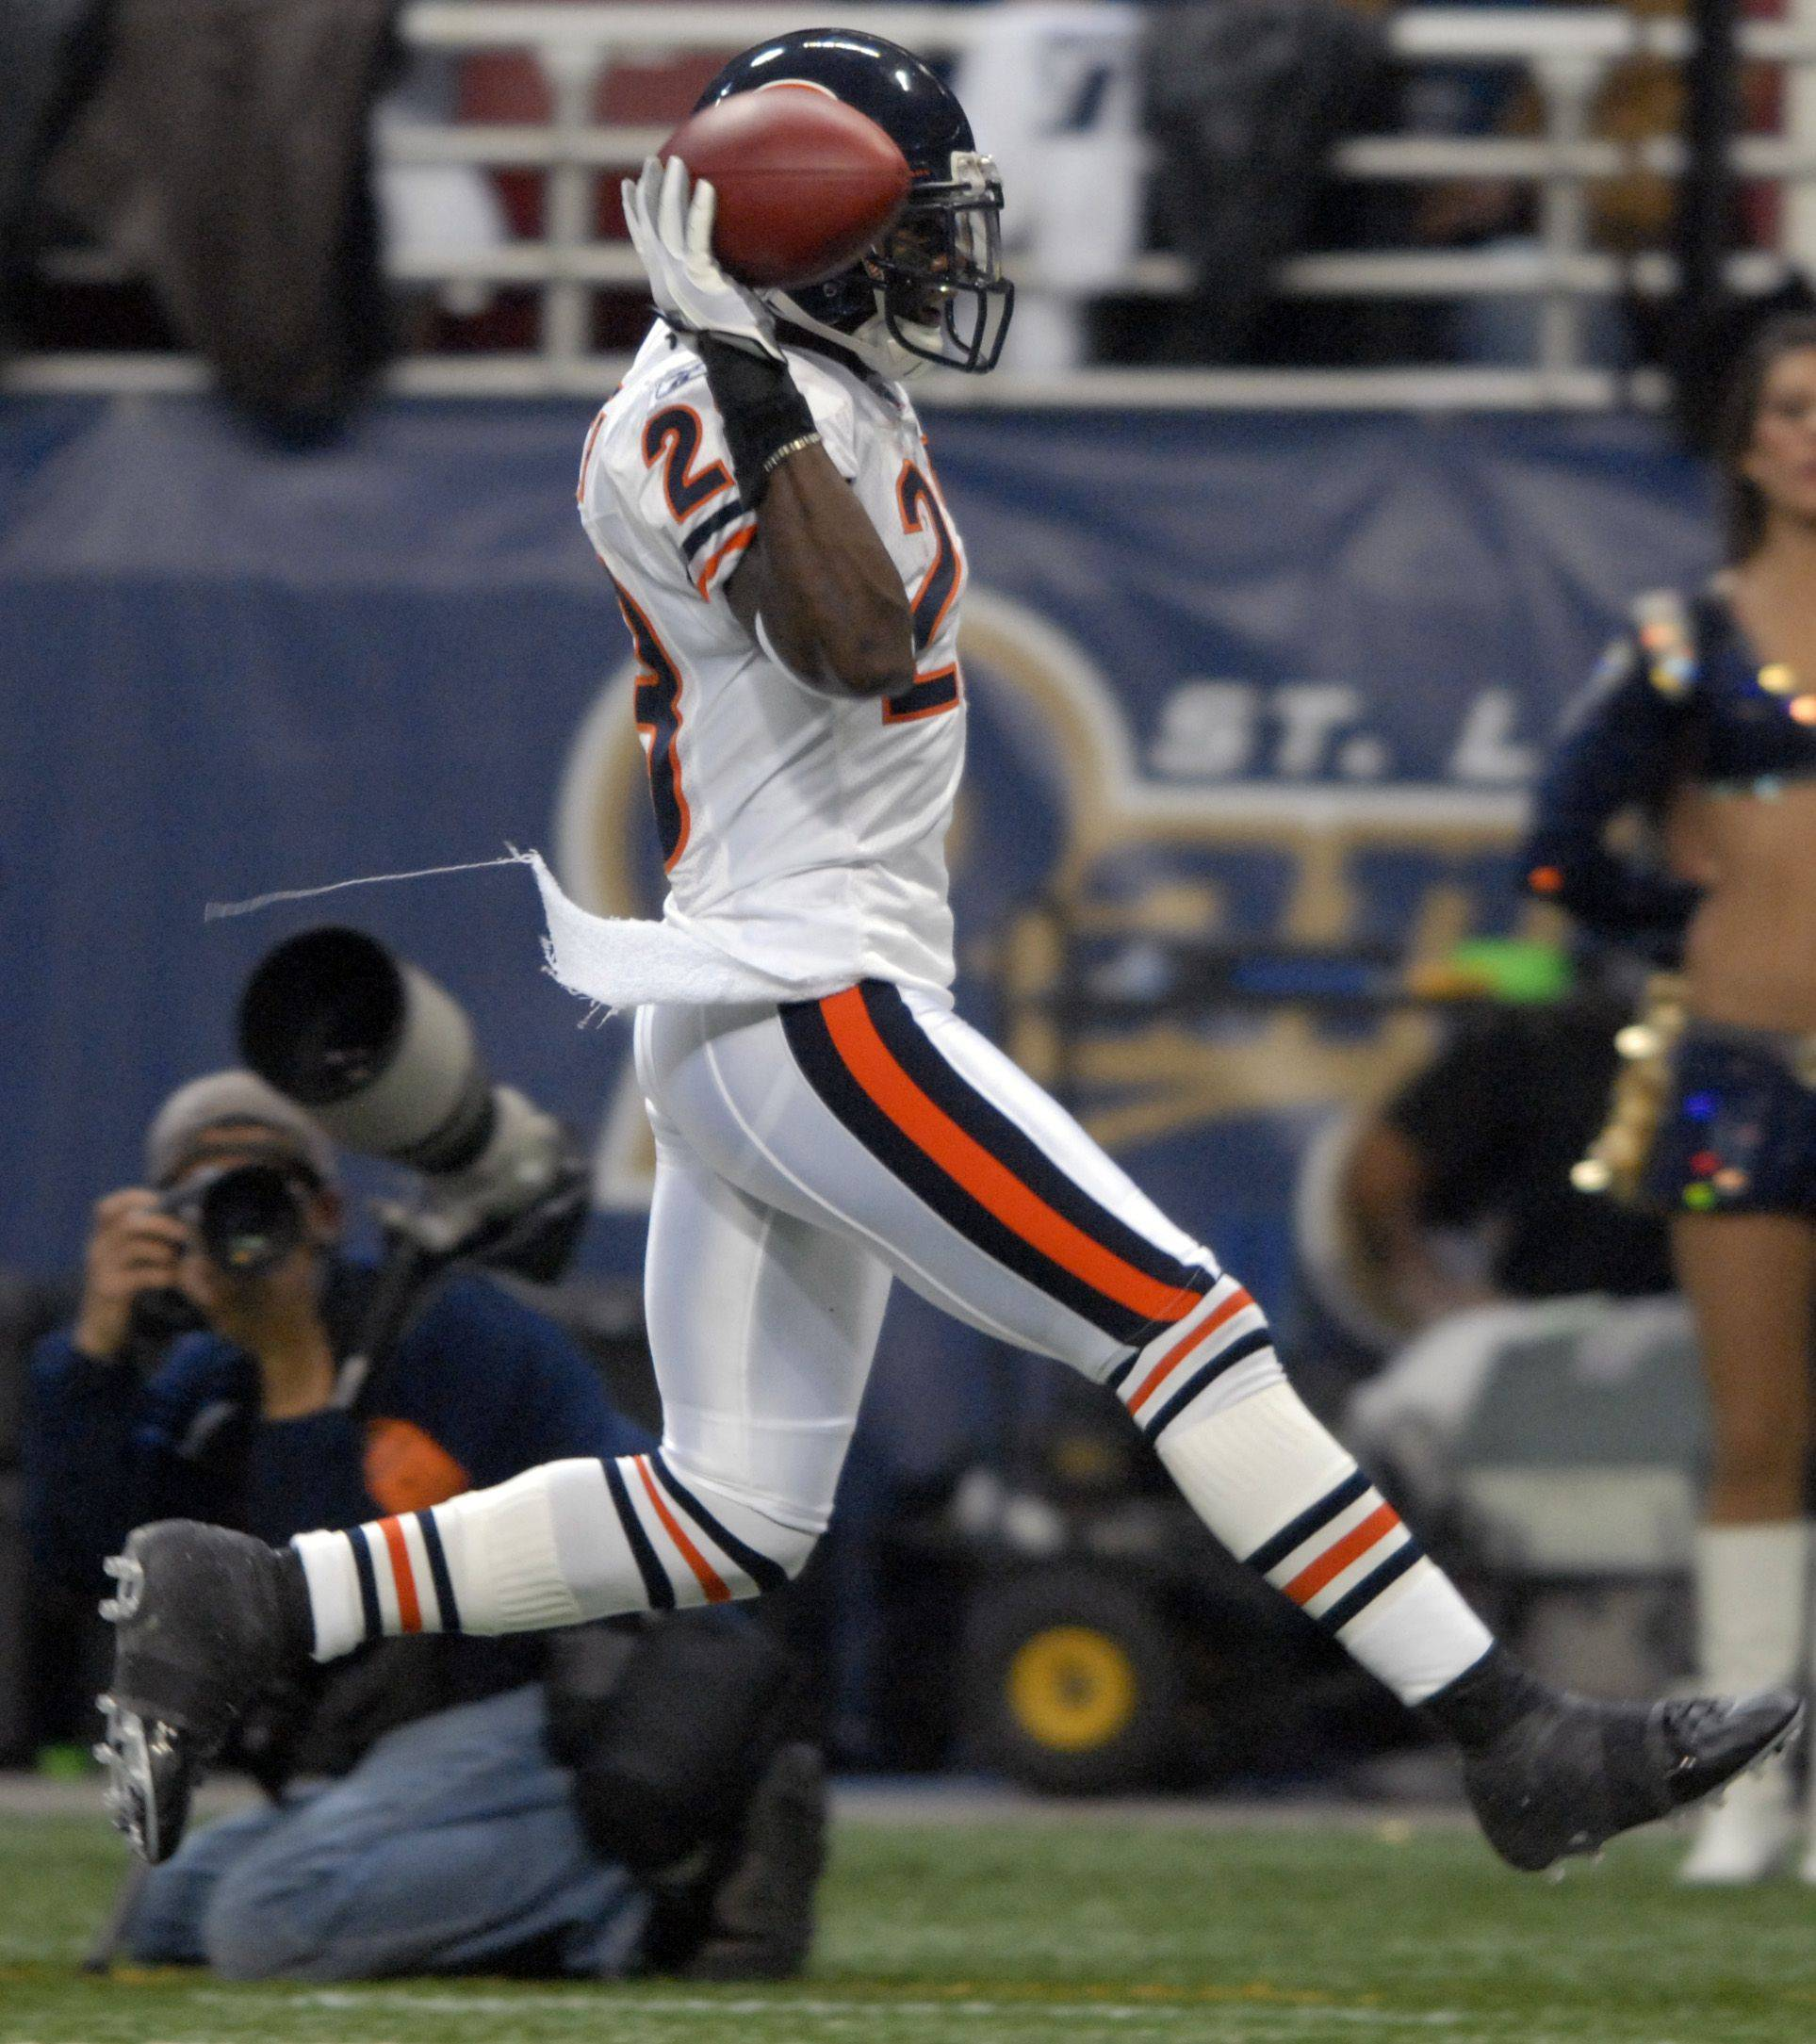 No. 4: Devin Hester celebrates his 94-yard kick off return for a touchdown during the game against the St. Louis Rams on December 11, 2006.